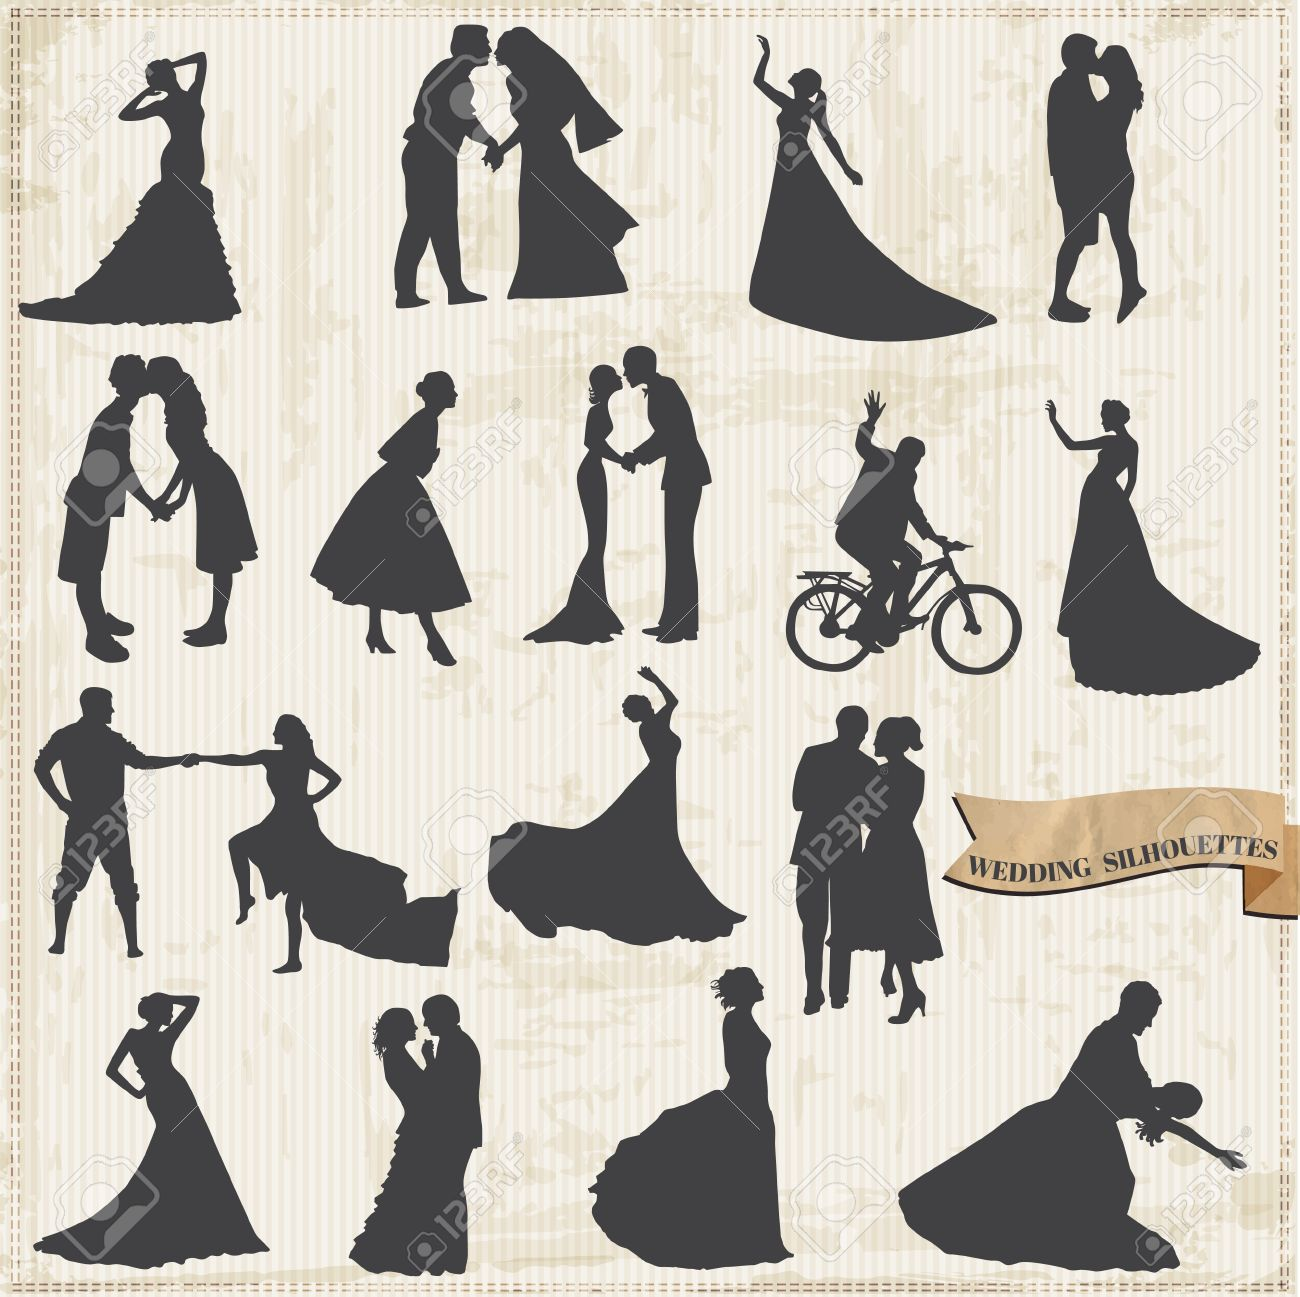 Vintage Wedding Silhouettes - Bride and Groom - for design and scrapbook Stock Vector - 17621353